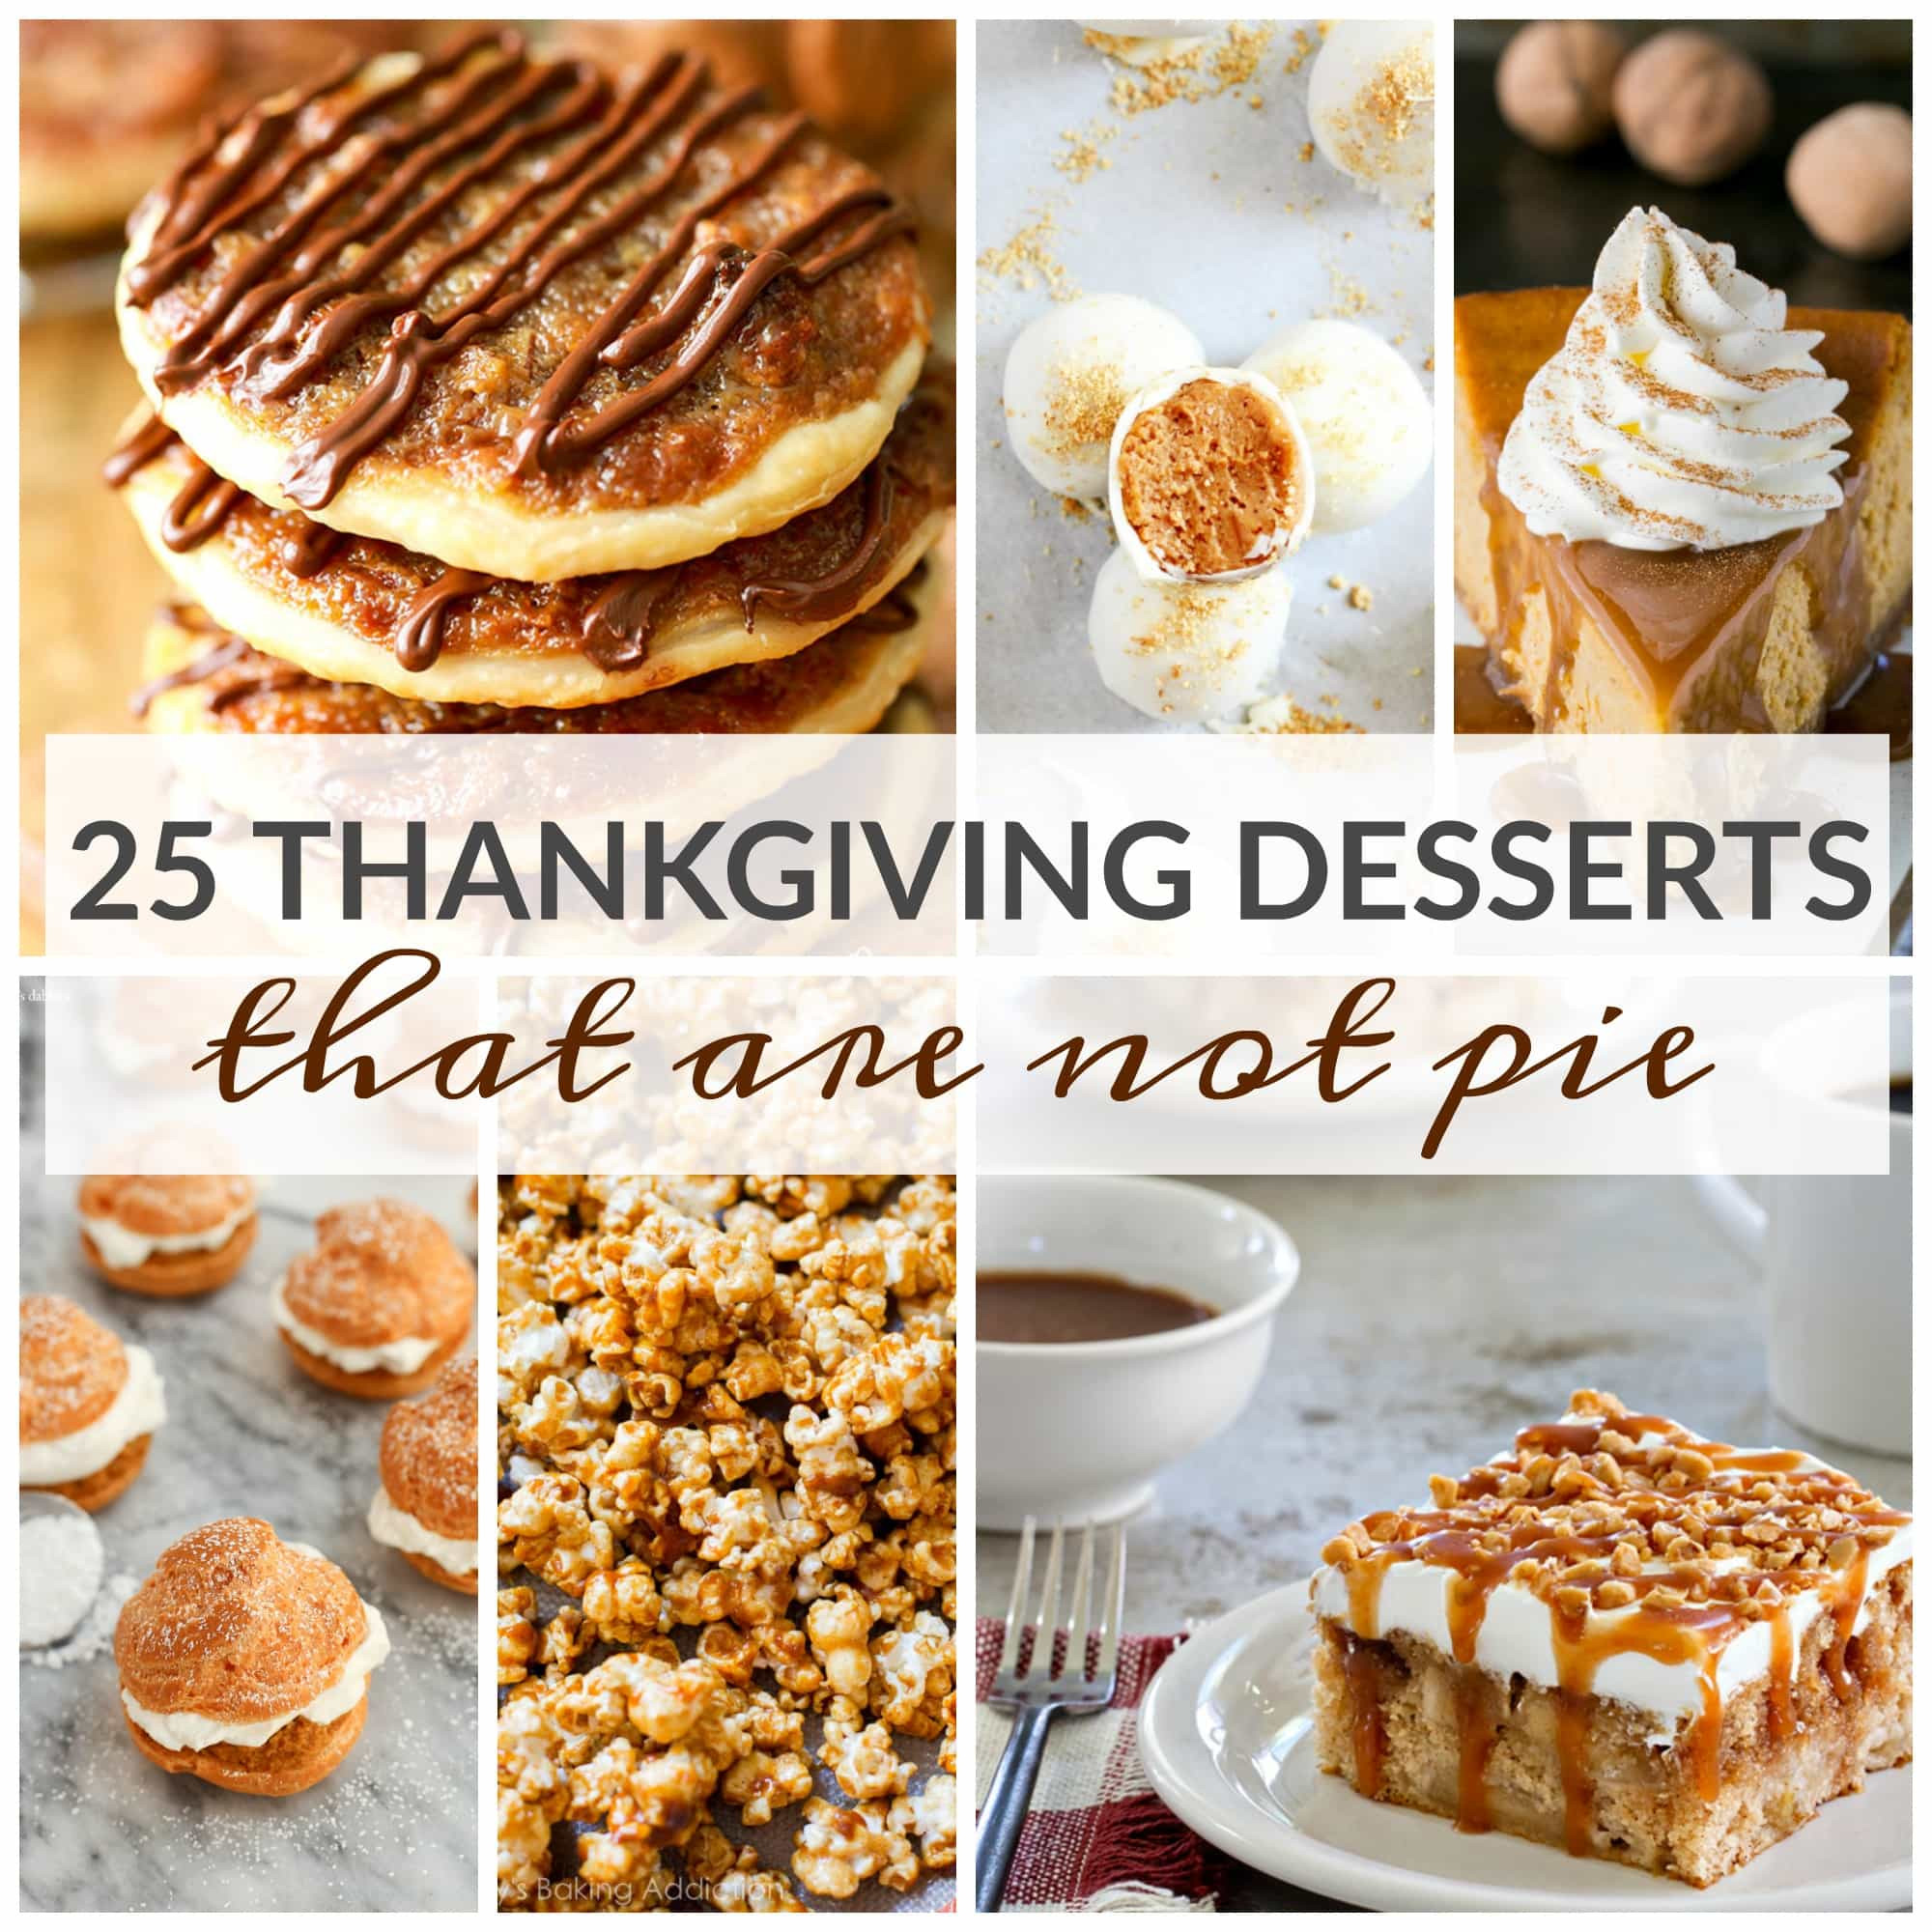 Thanksgiving Recipes Desserts  25 Thanksgiving Desserts That Are Not Pie A Dash of Sanity